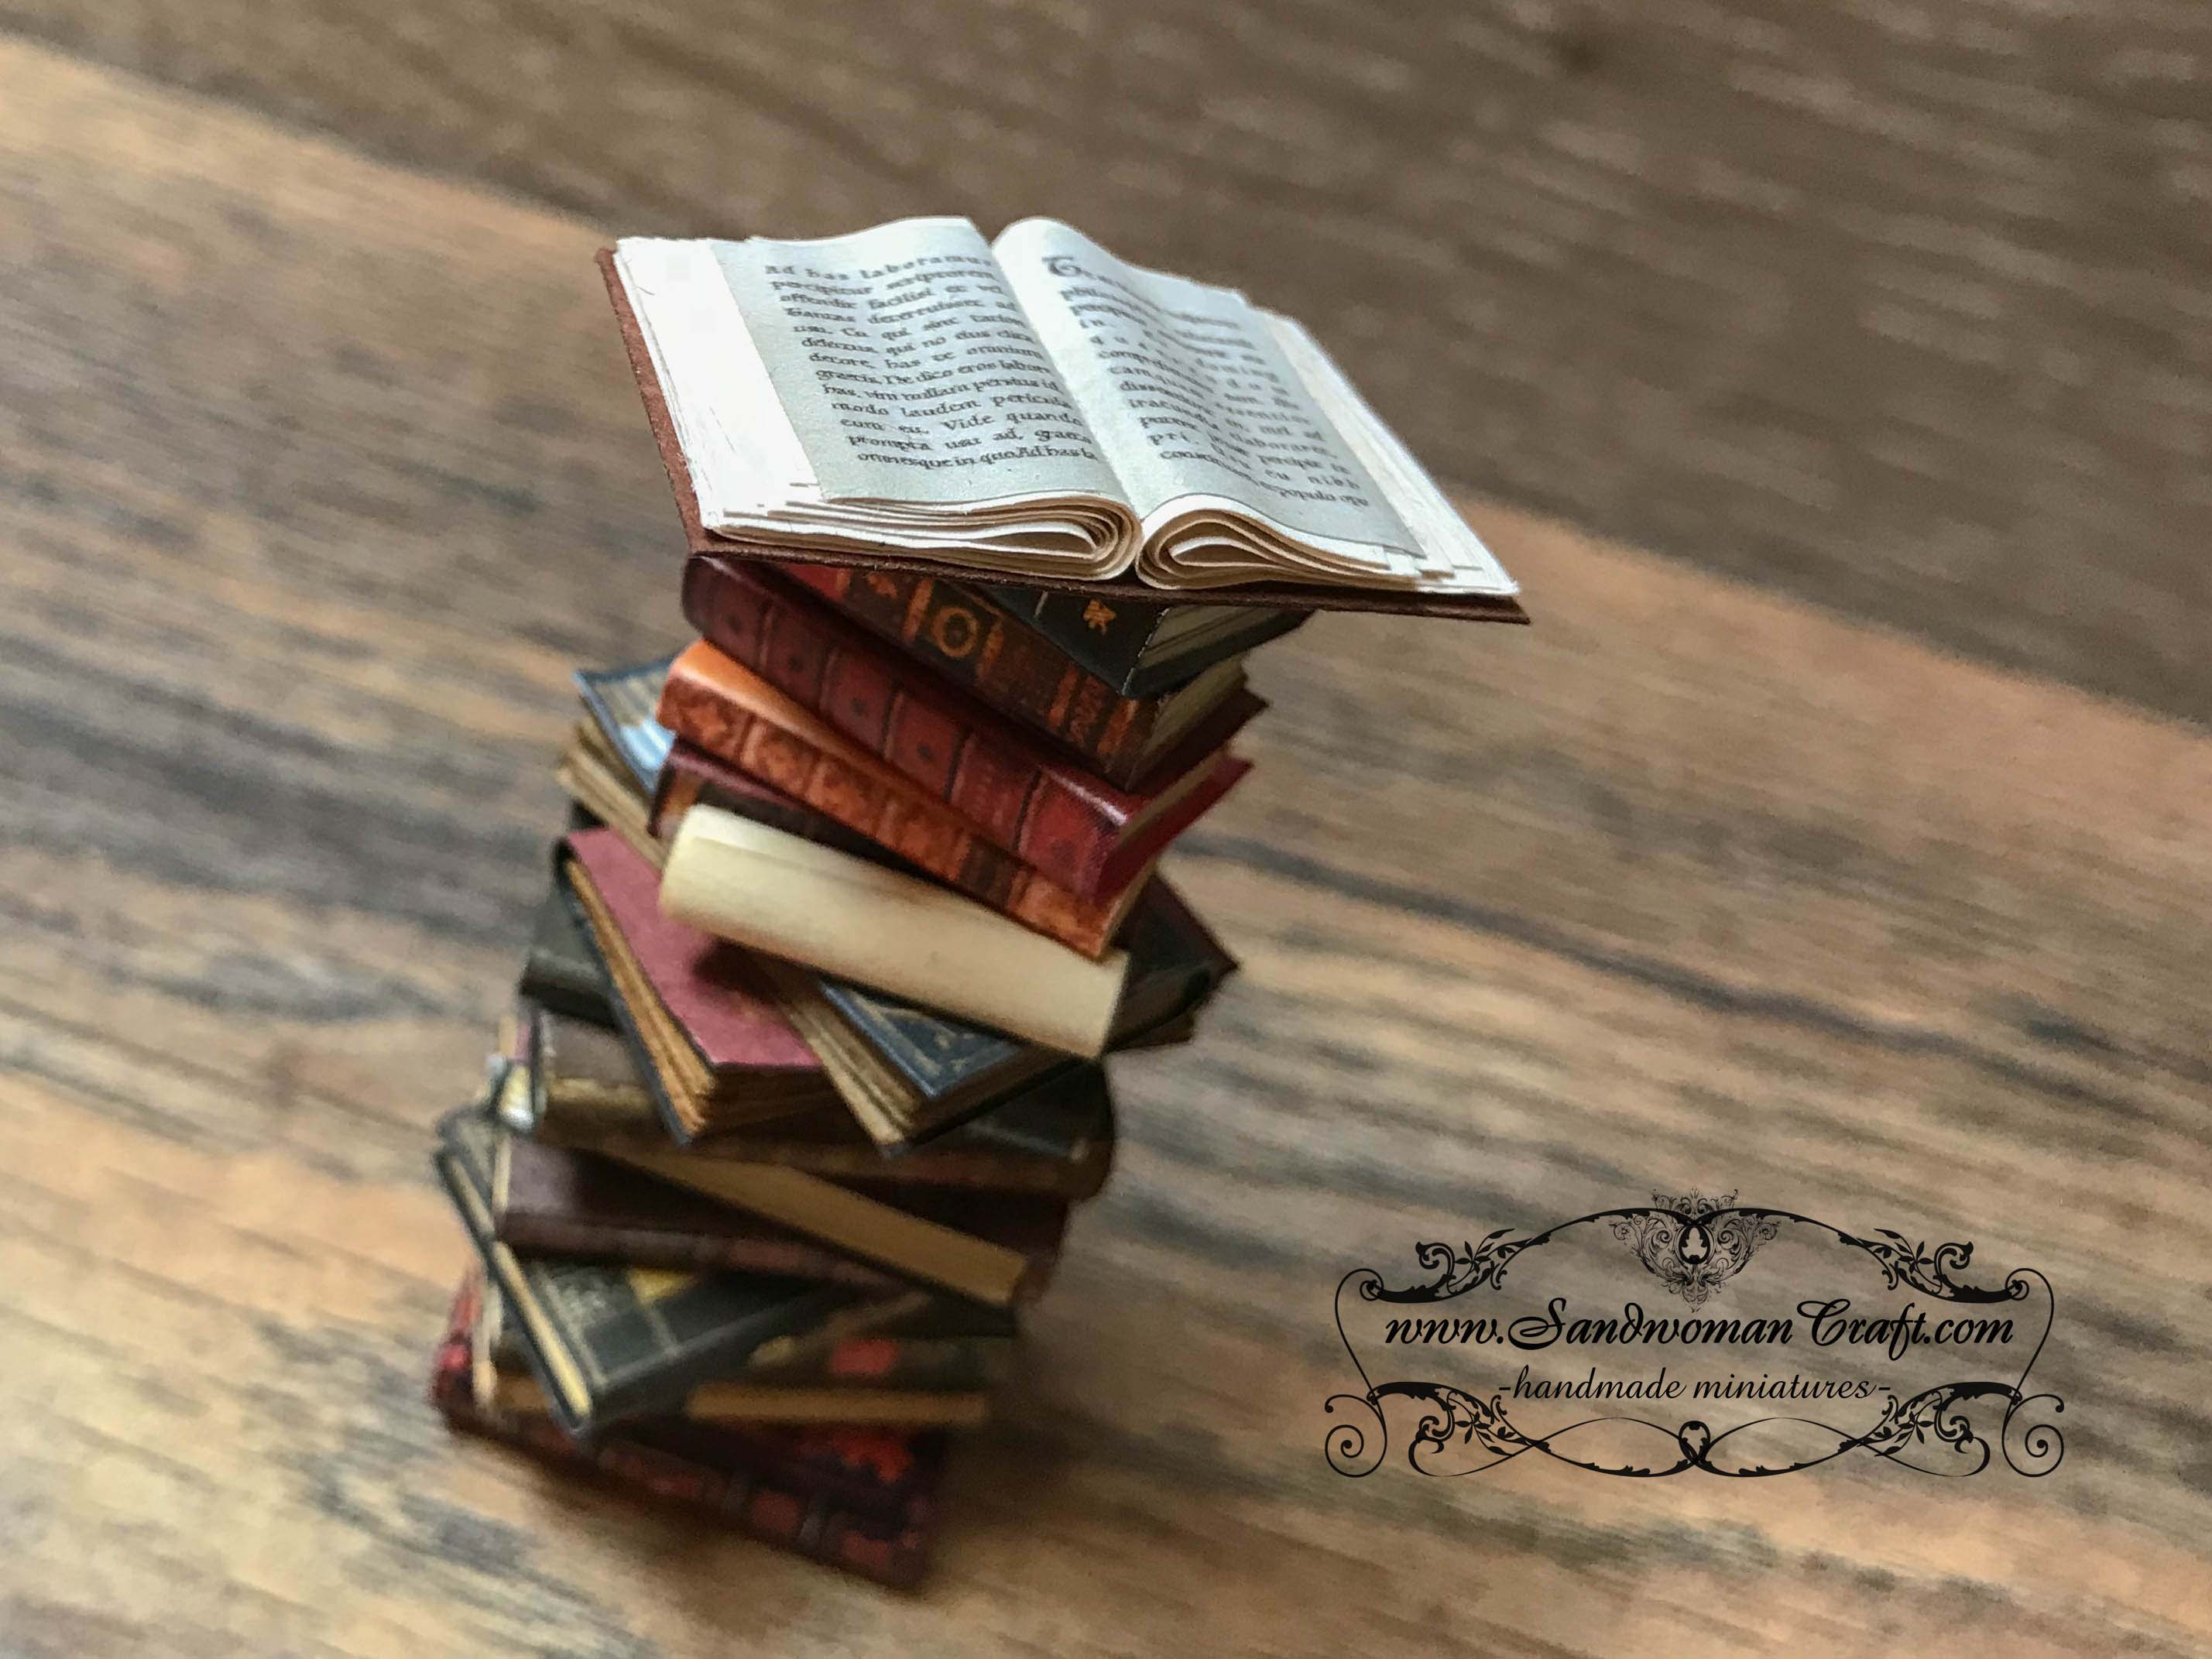 Miniature leather books with open book at the top